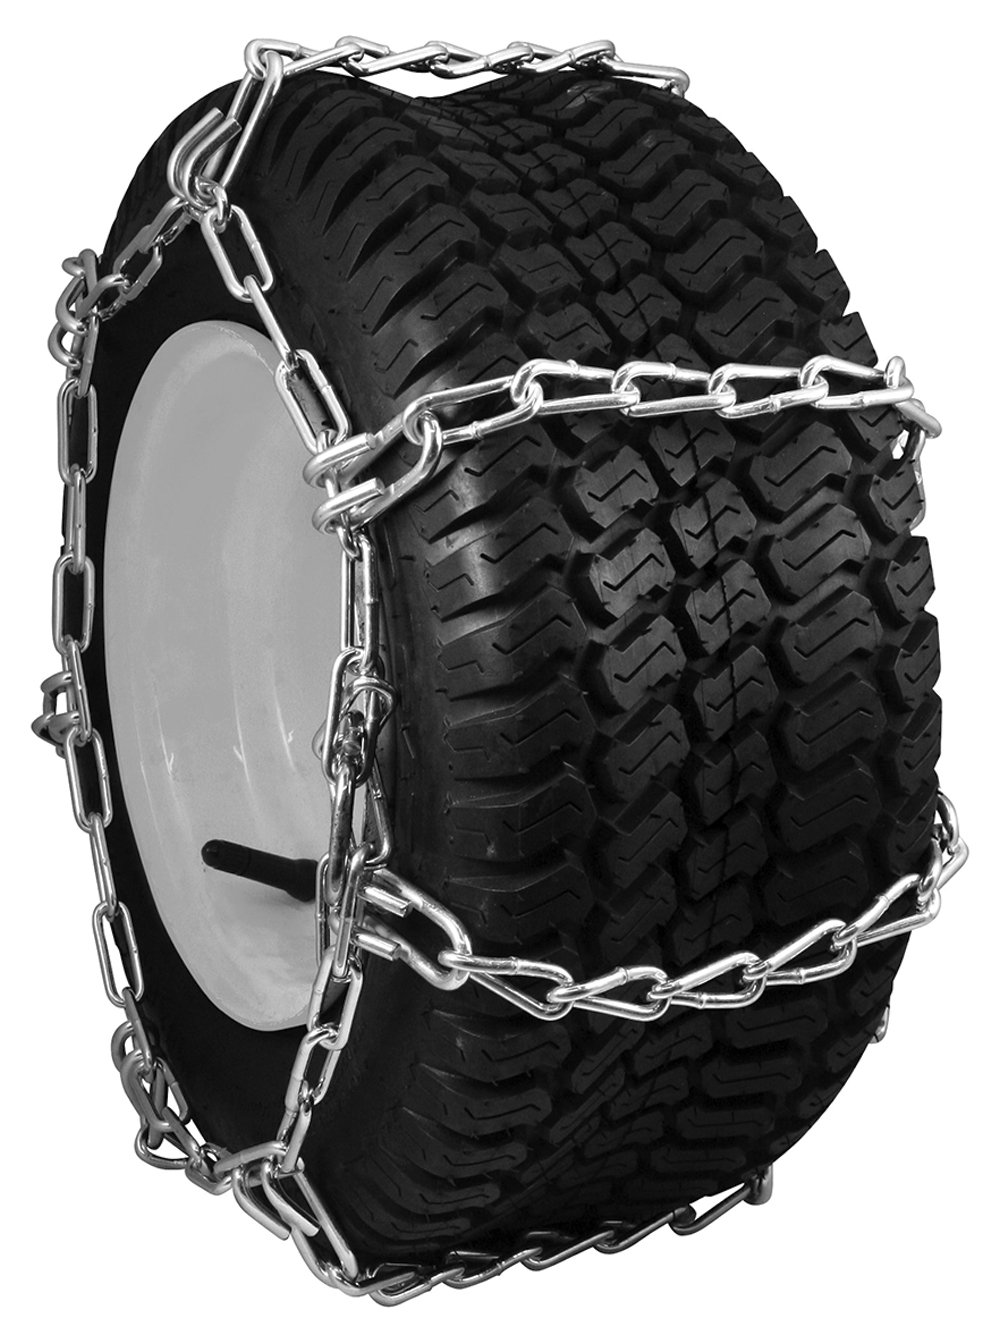 Stens 180-368 4 Link Tire Chain